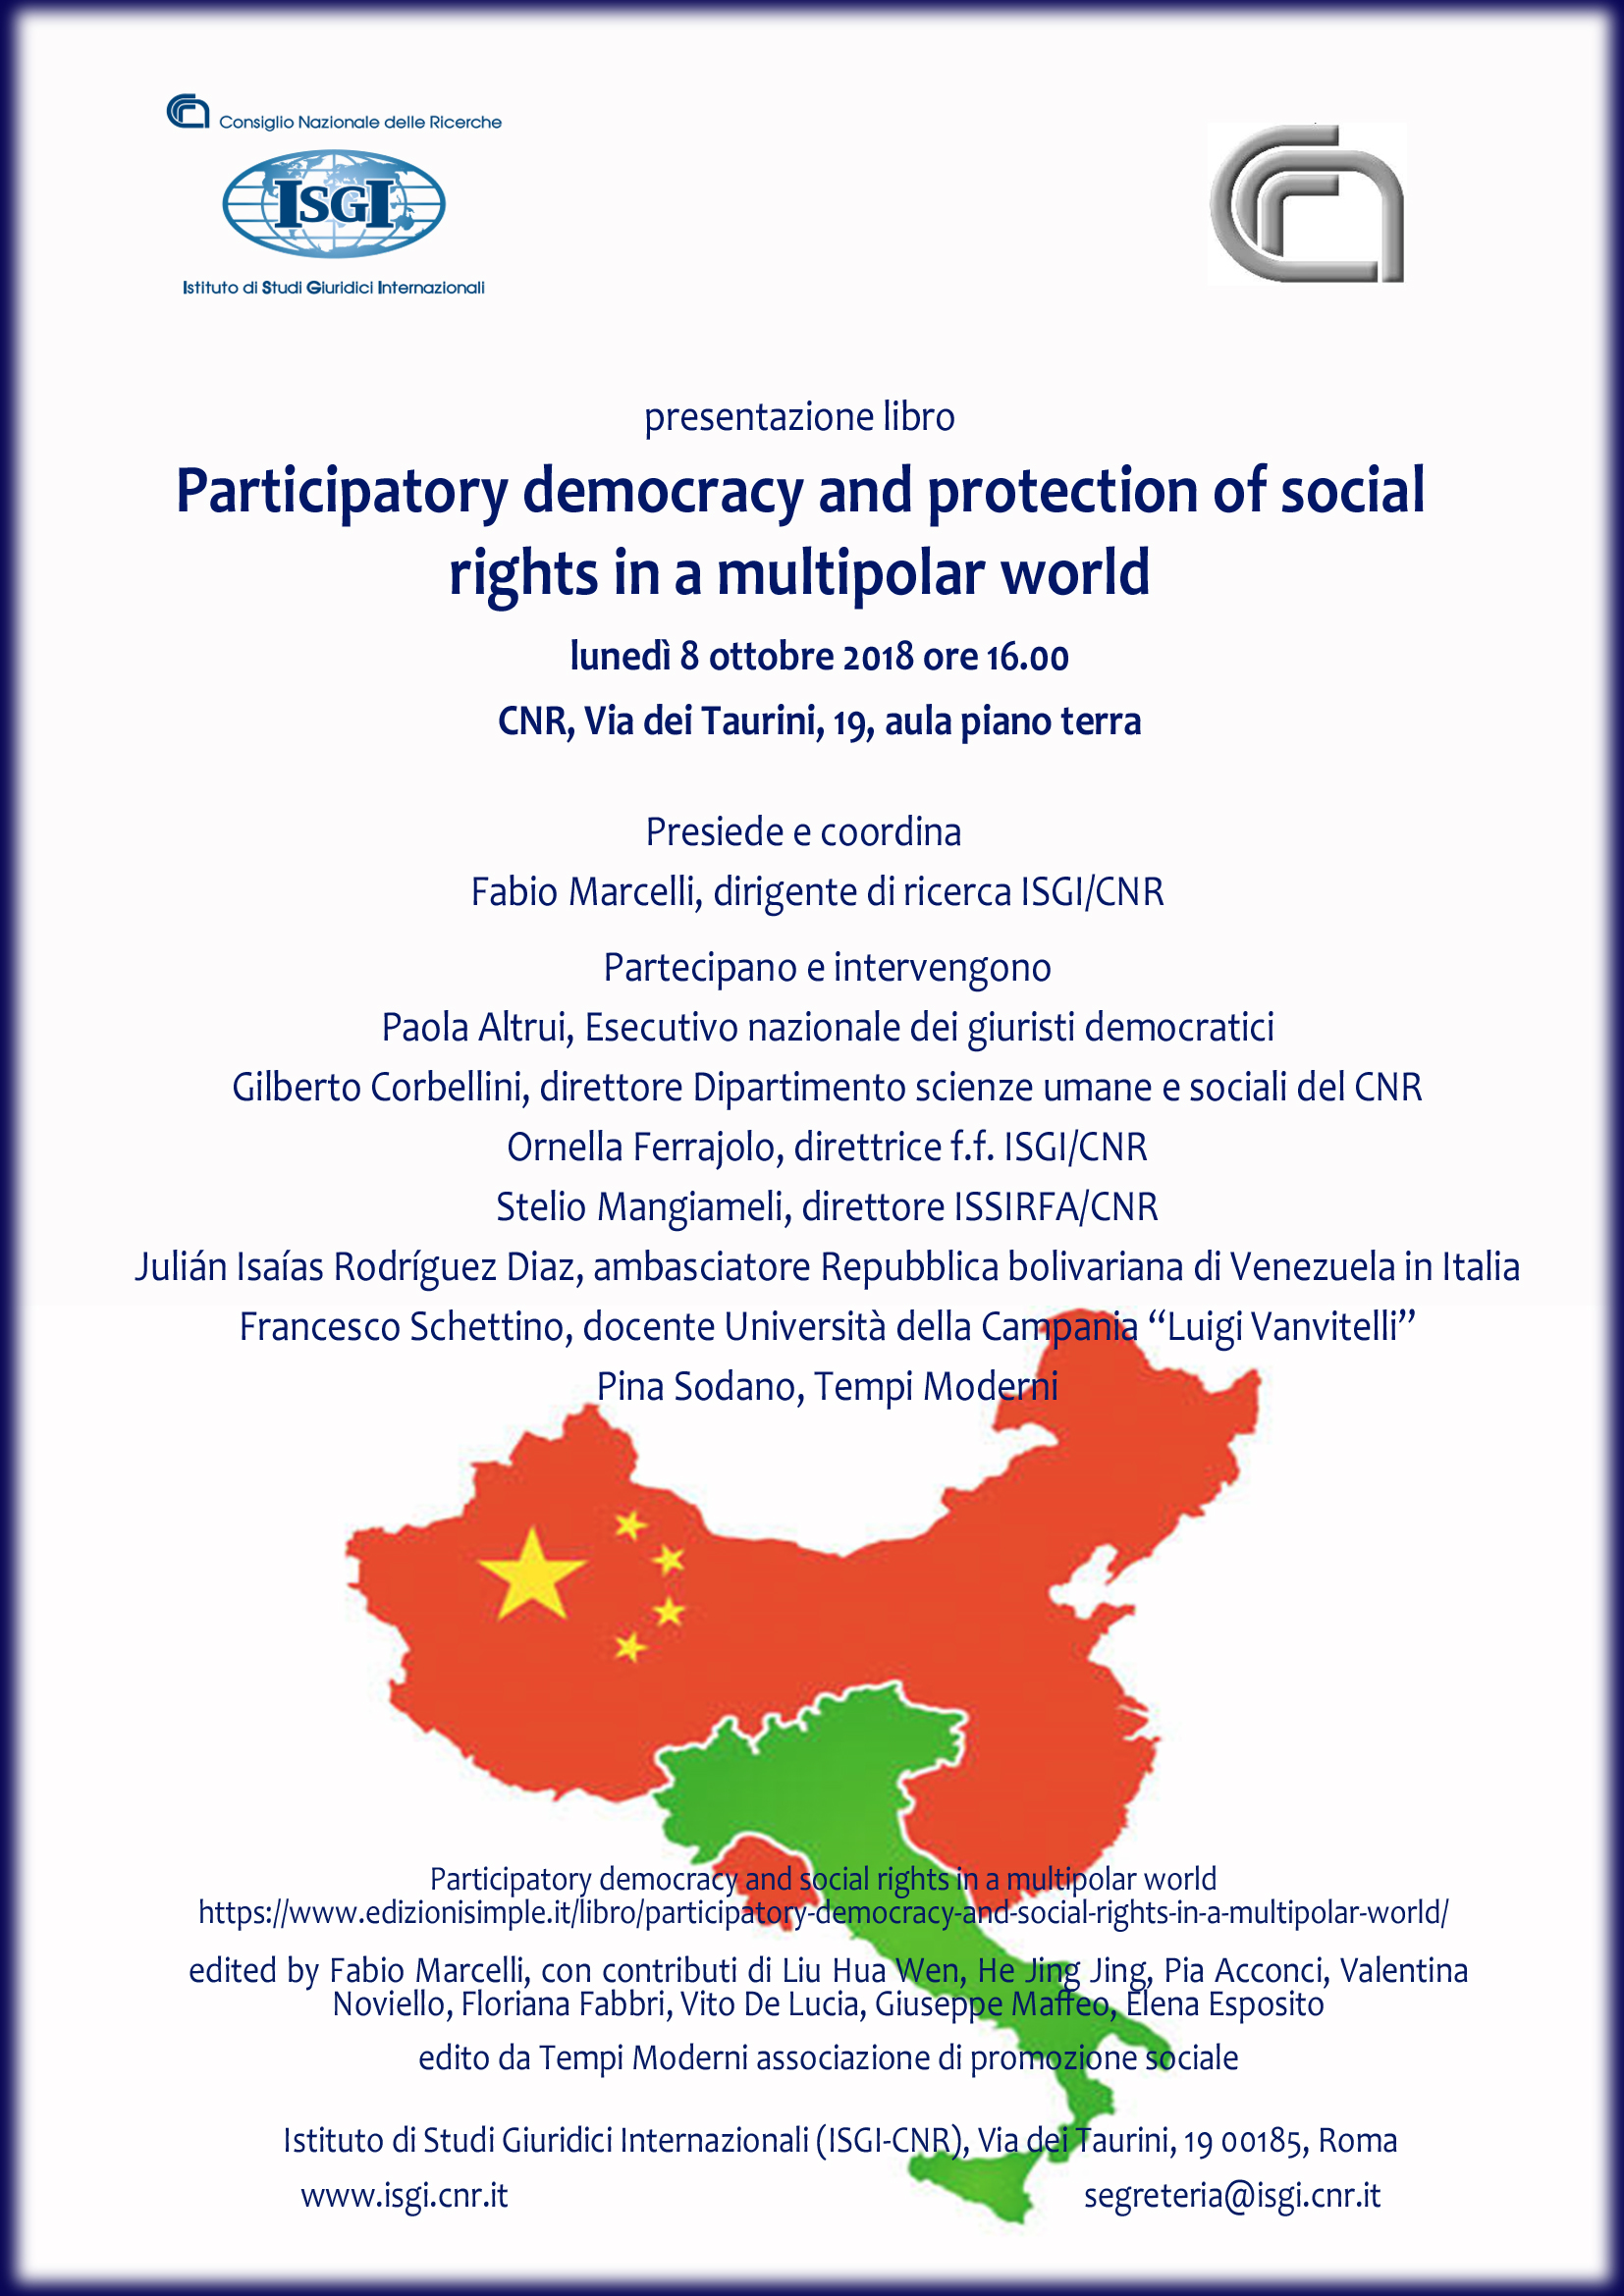 Participatory democracy and protection of social rights in a multipolar world 8 ottobre 2018, Roma